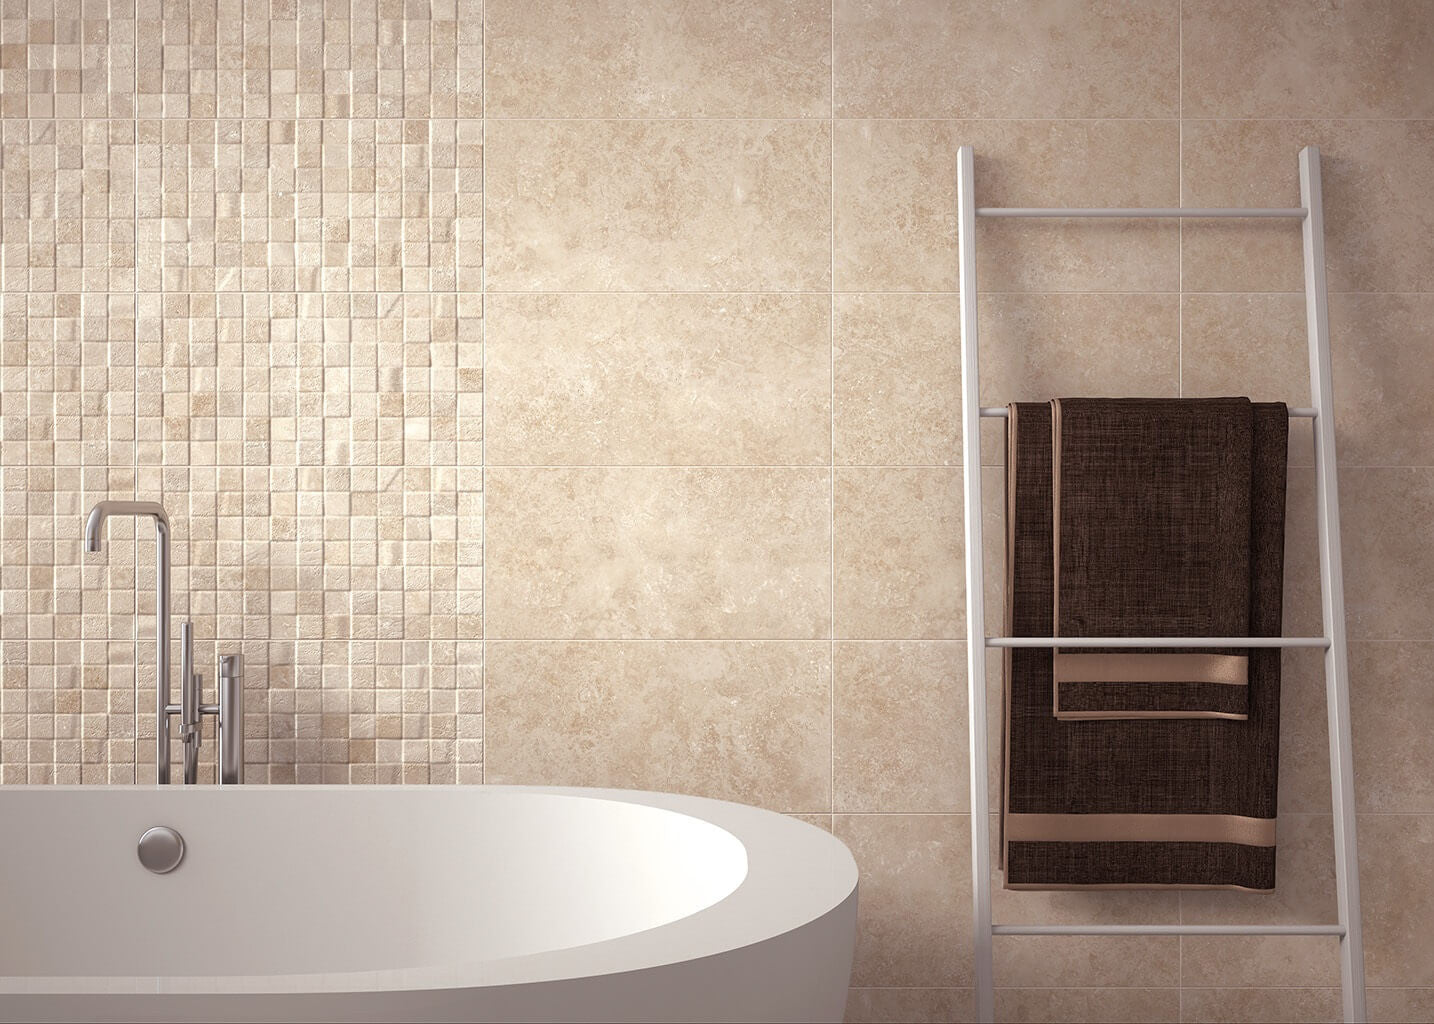 Ceramic Tiles for Kitchens & Bathrooms in Gorgeous Cream